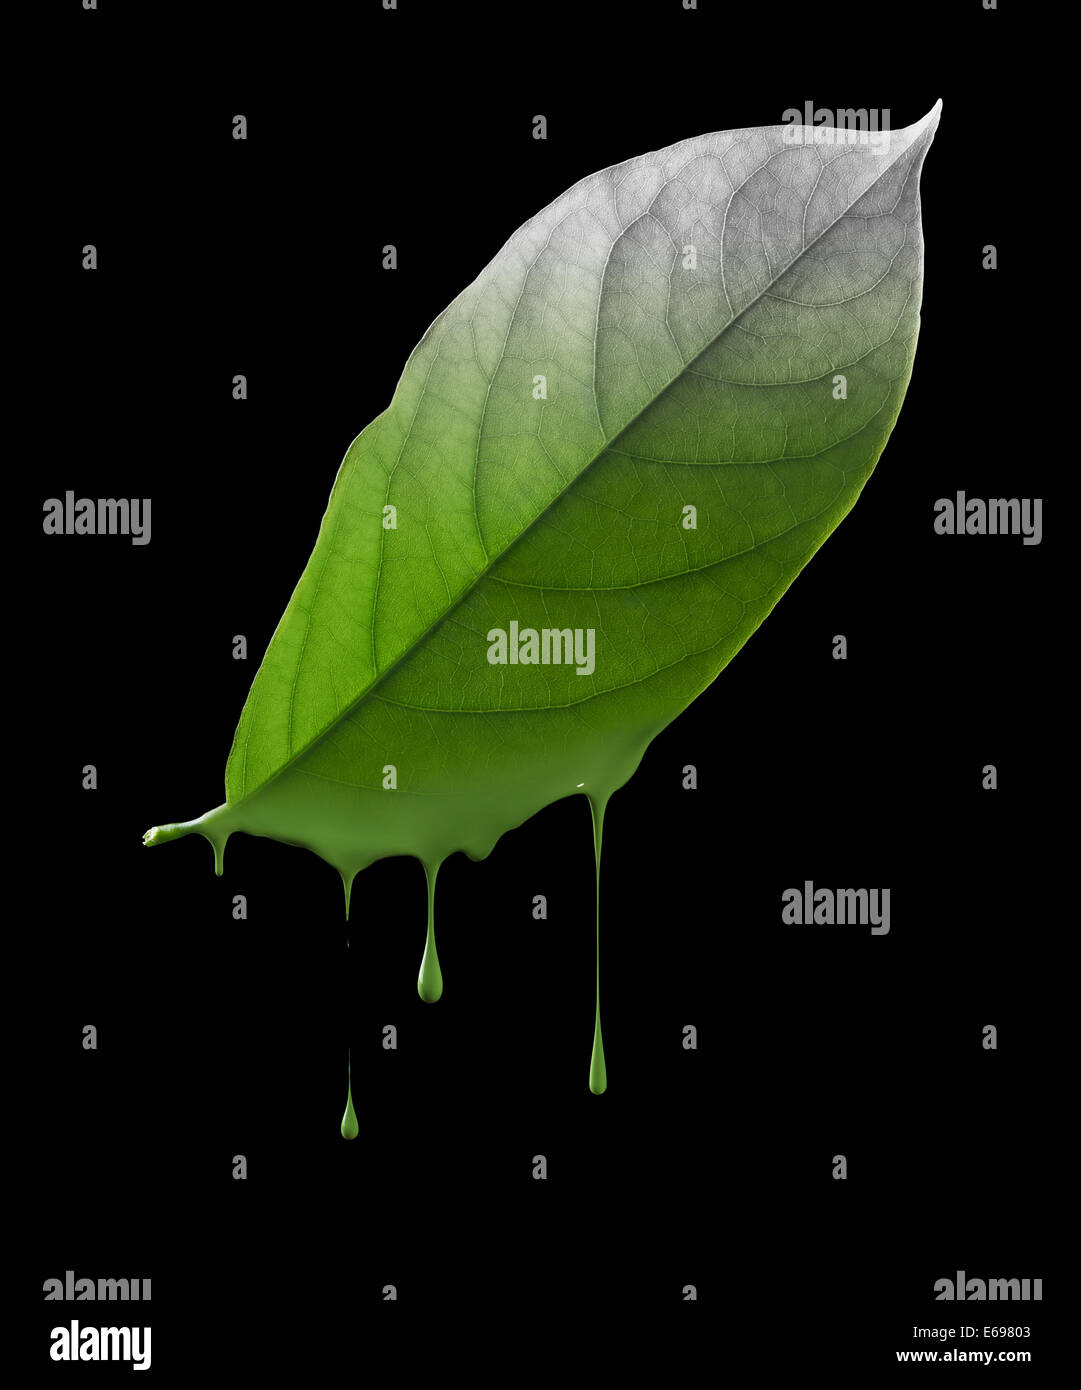 color dropping off from green leaf, environmental damage concept - Stock Image